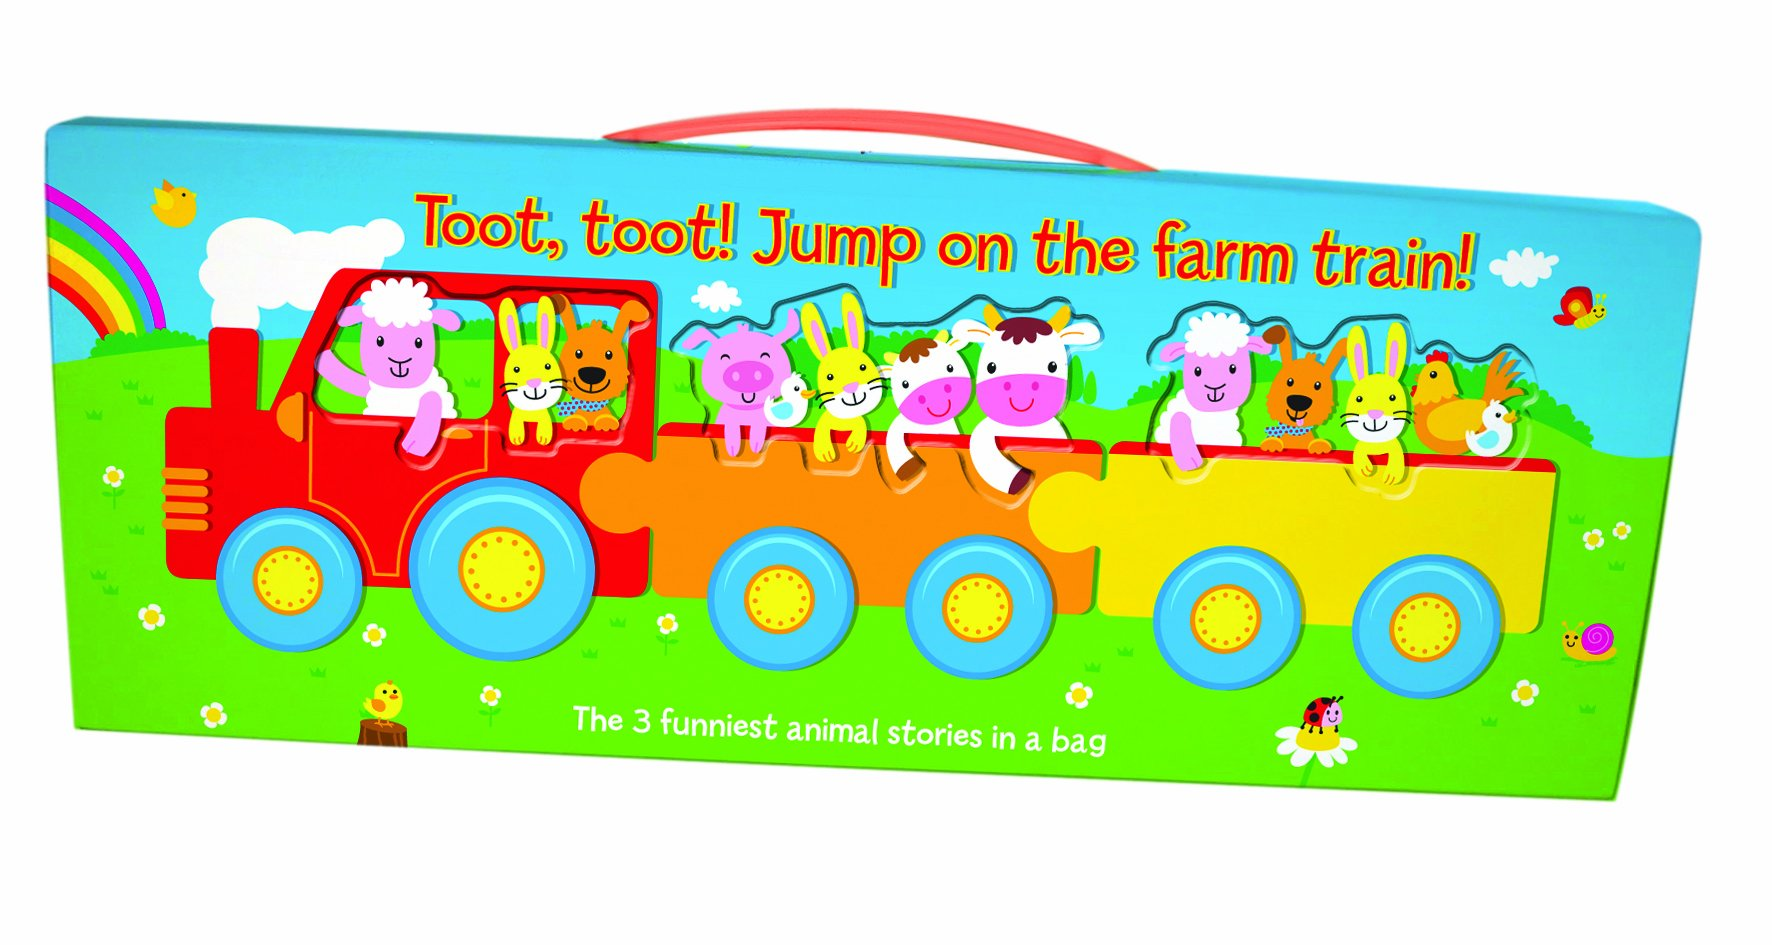 Toot  toot  all about the farm train